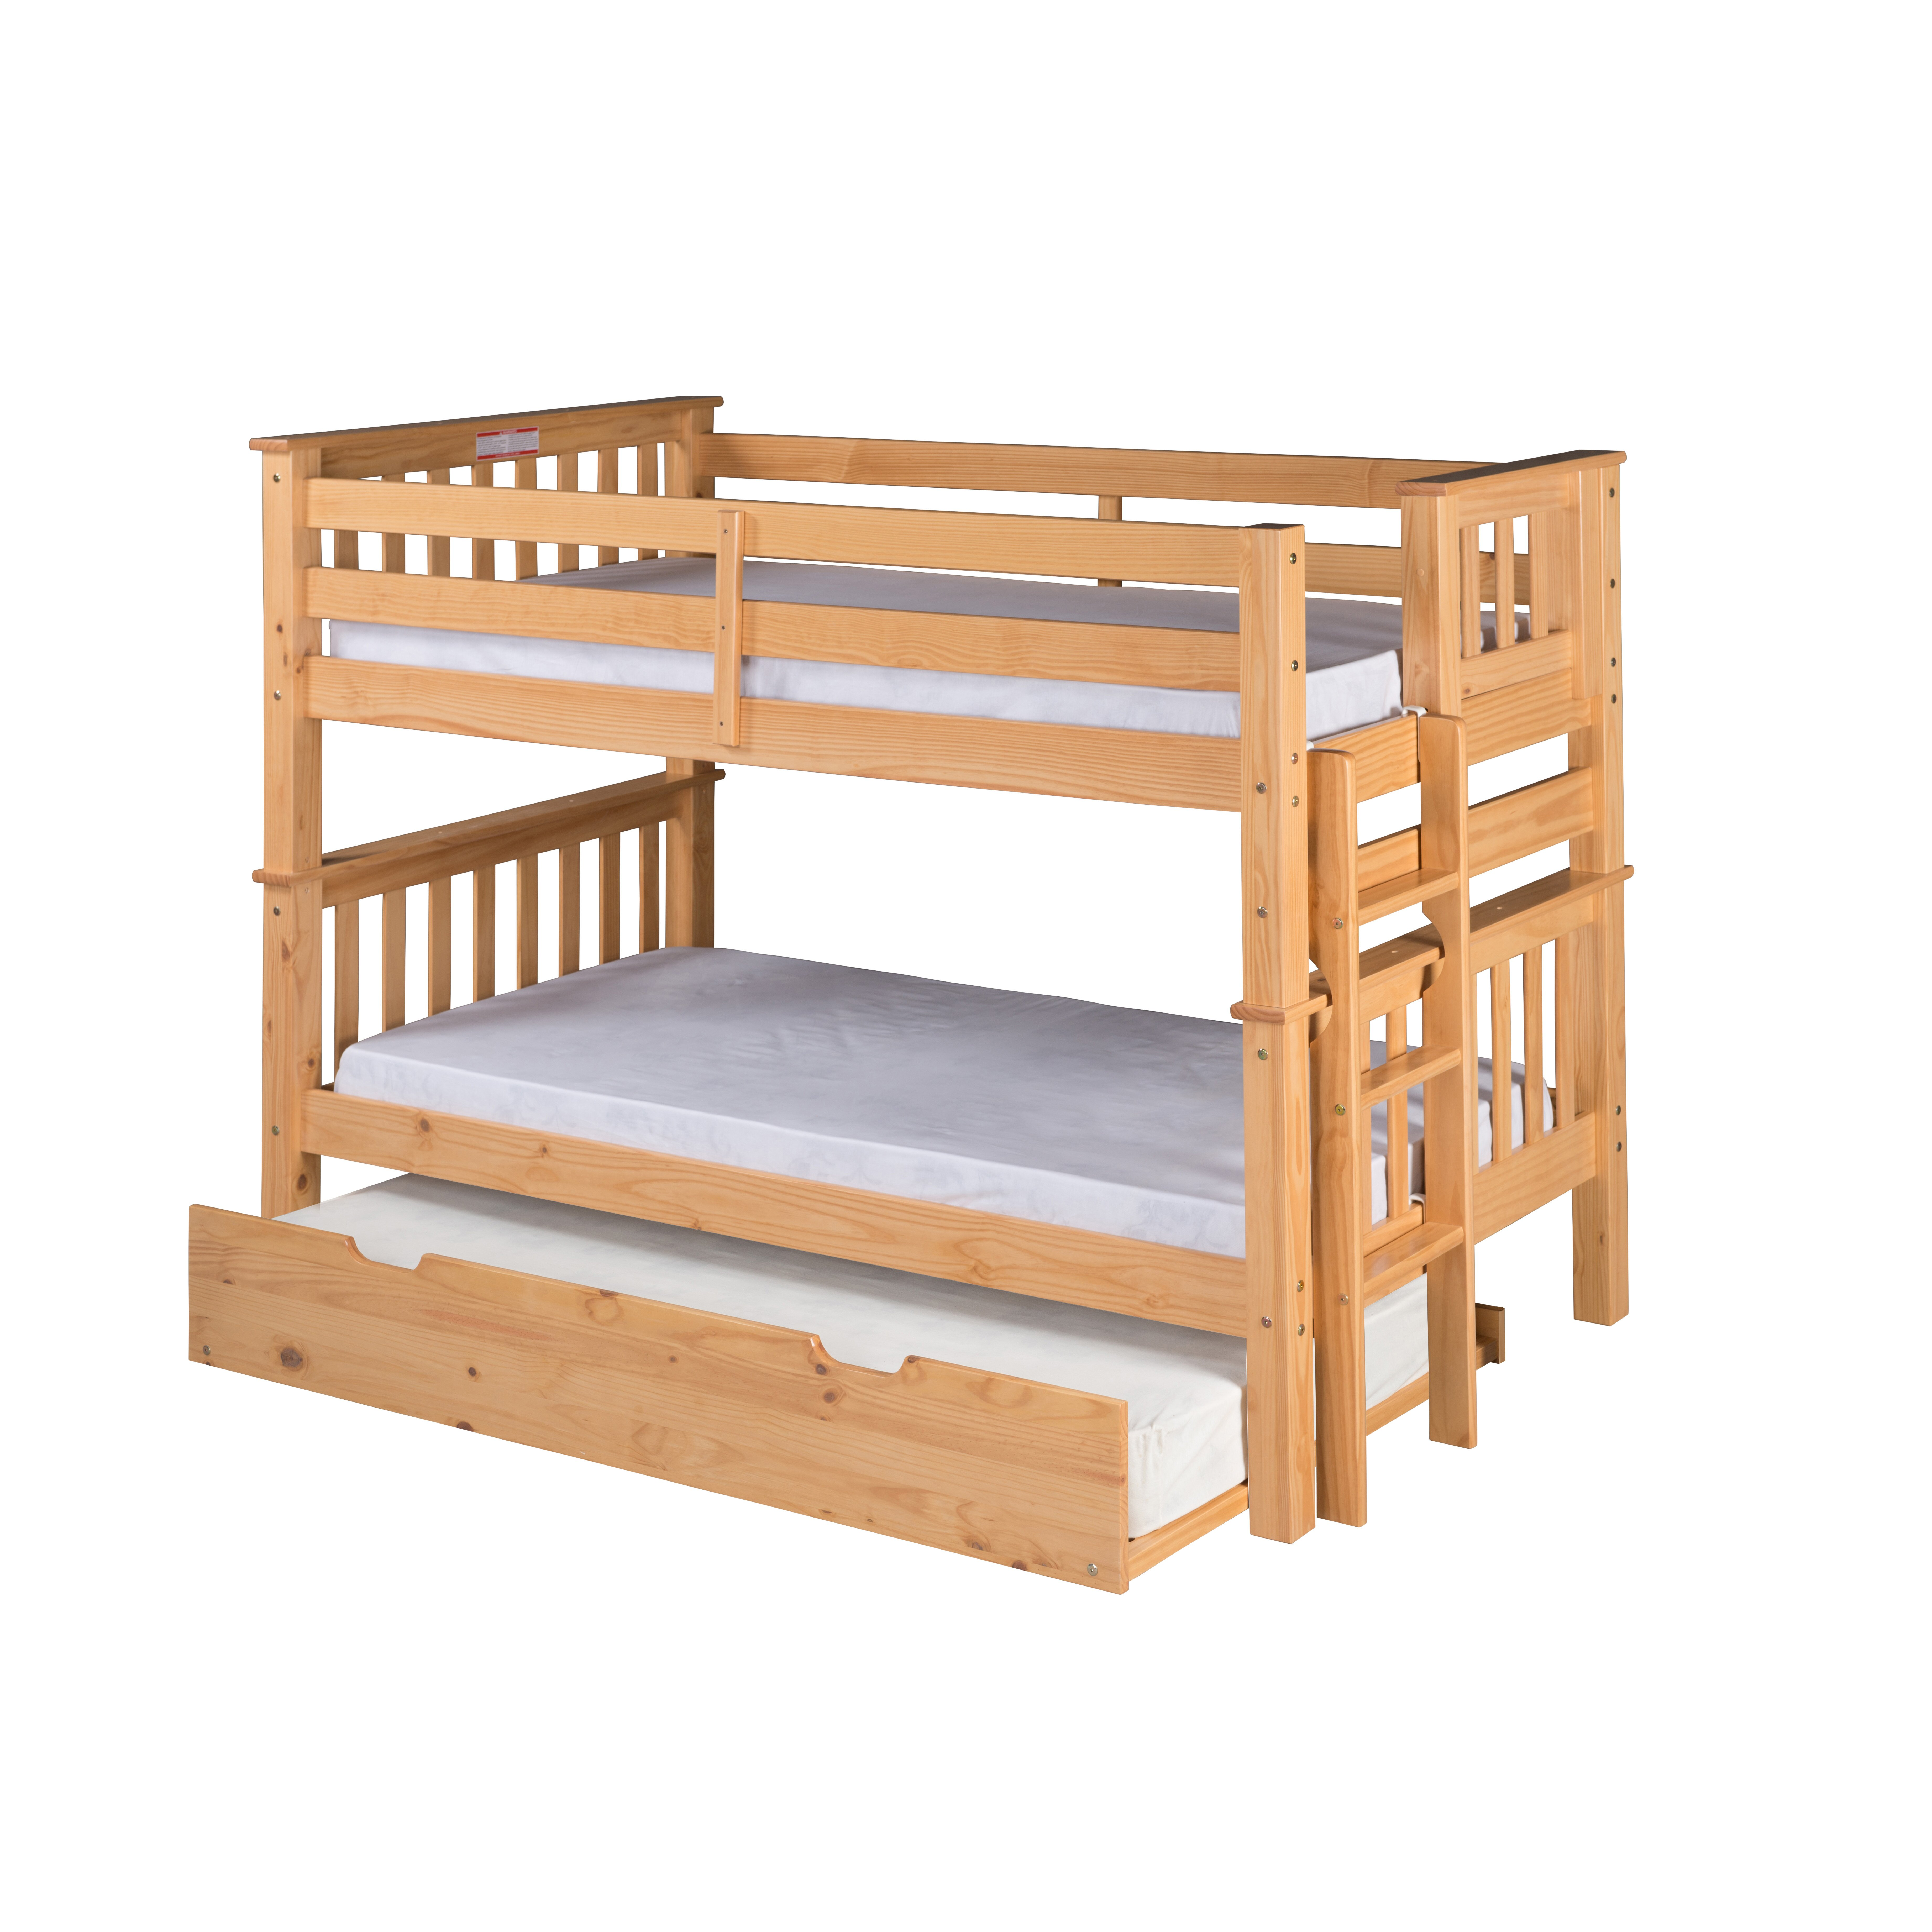 Single bed with guest bed underneath - Single Bed With Guest Bed Underneath 23